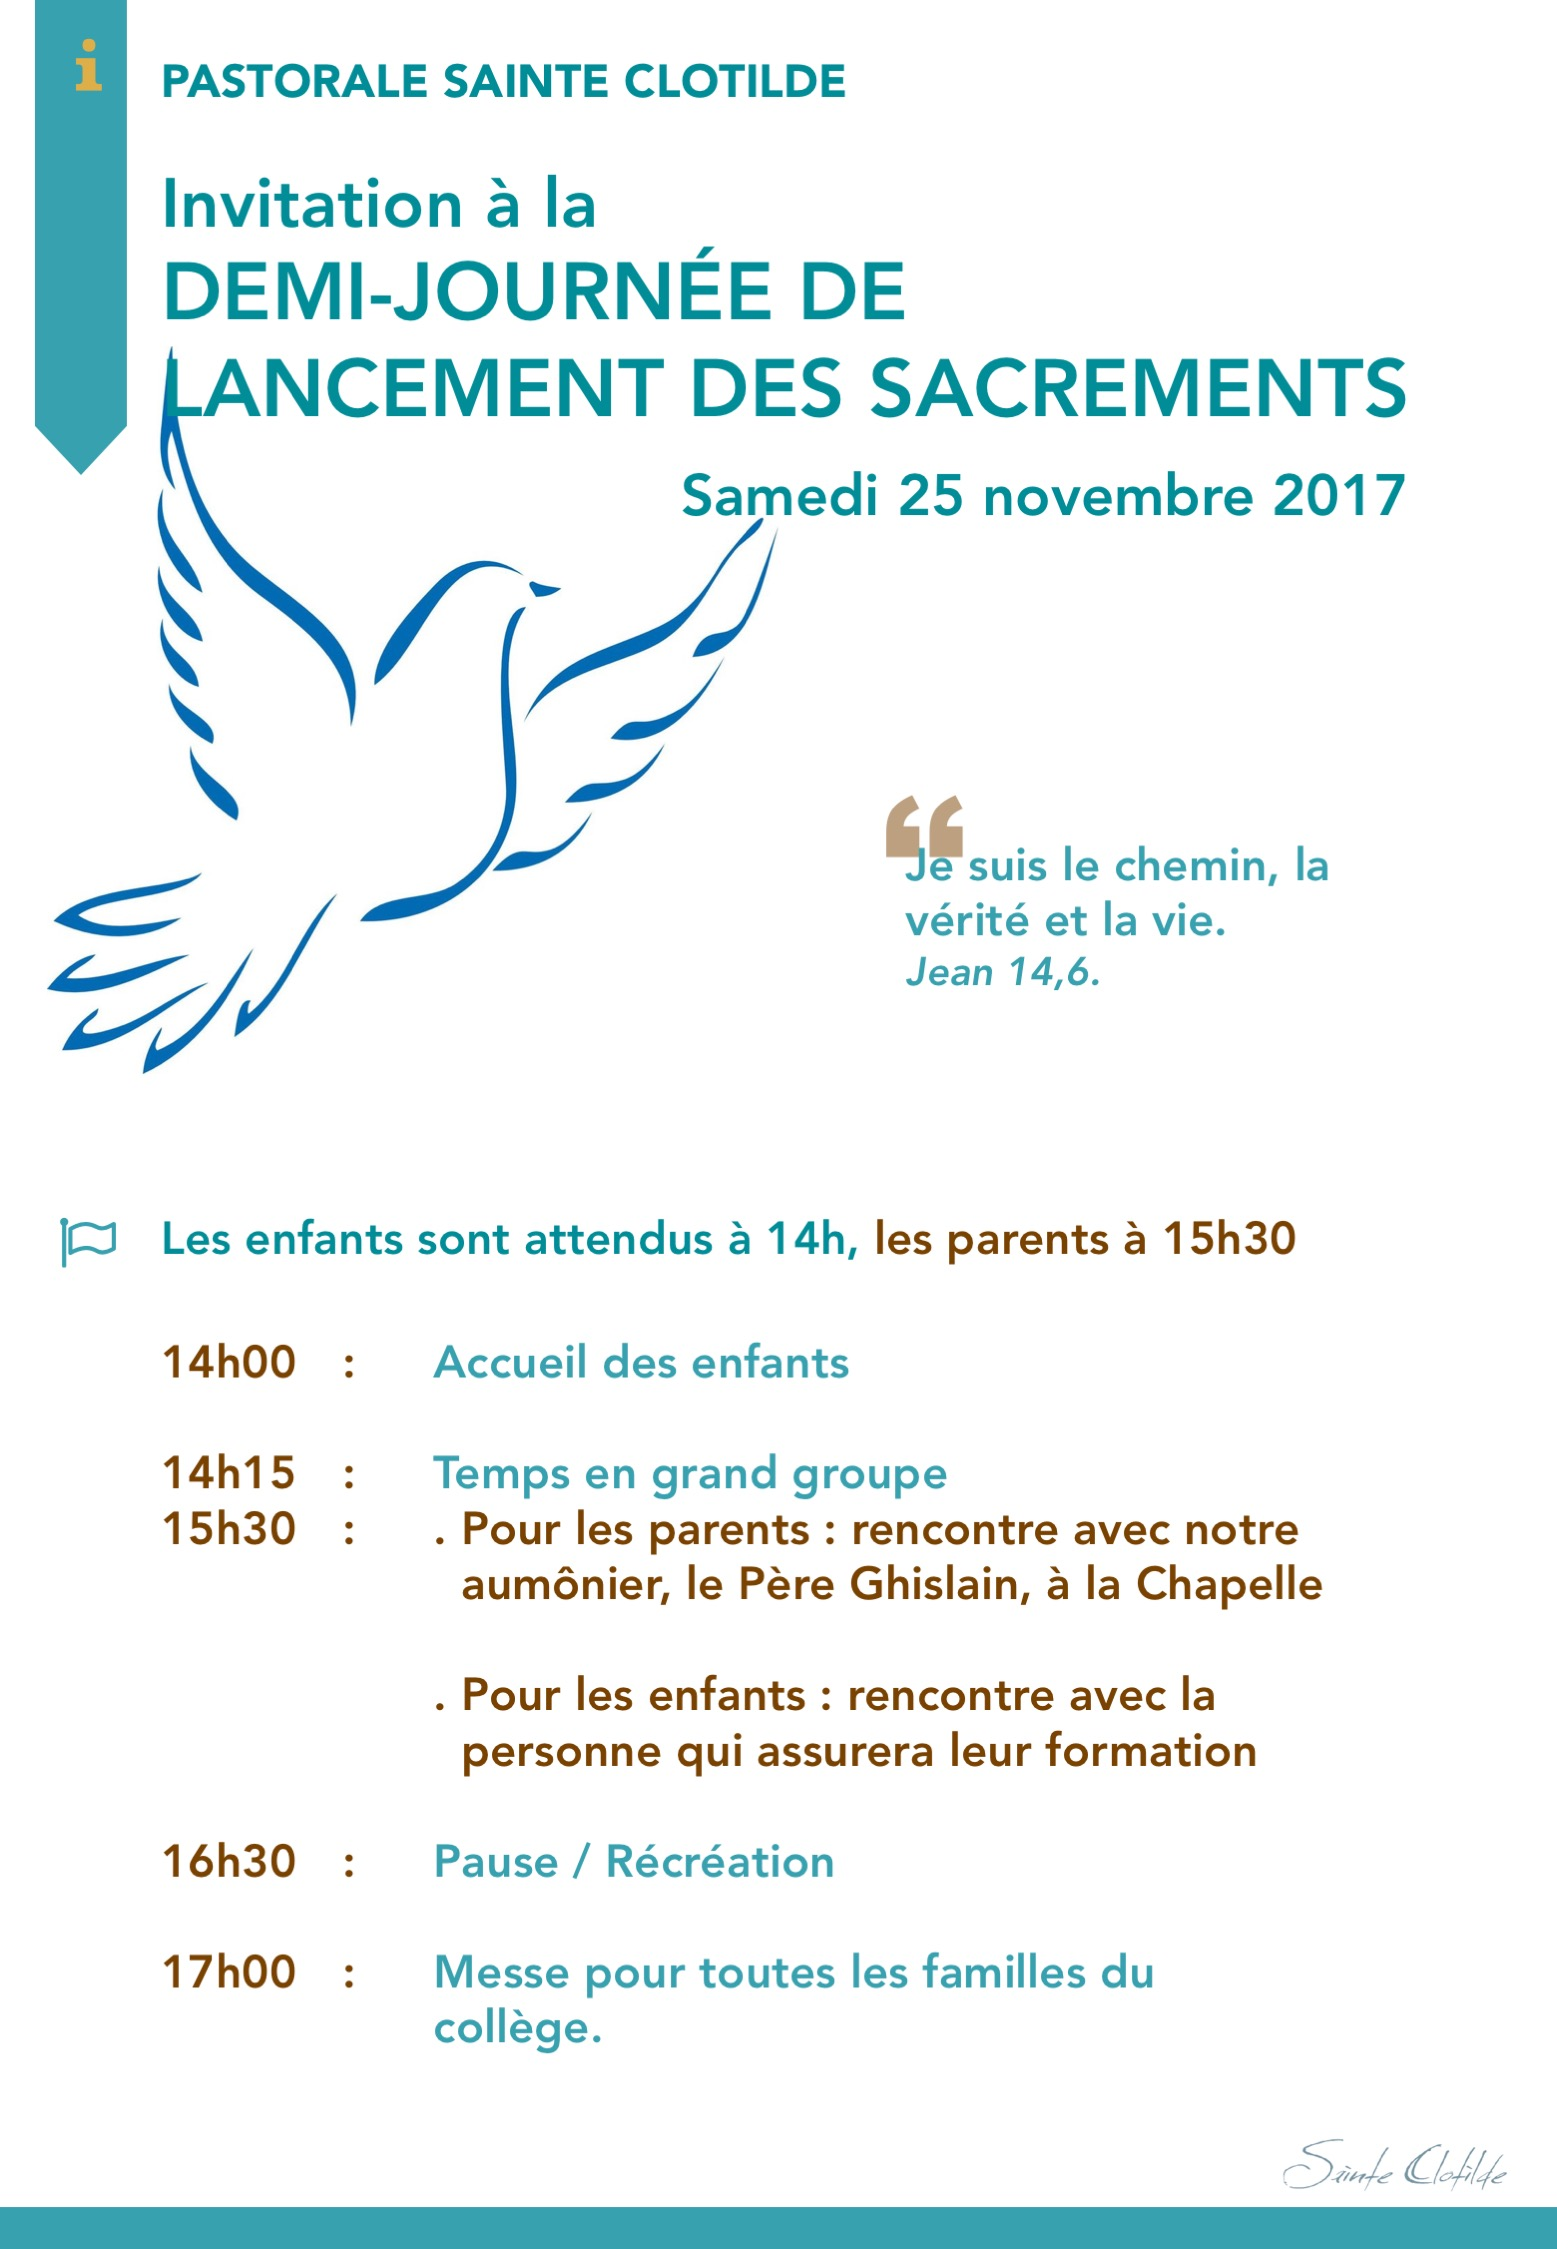 Pastorale2017_LancementDesSacrements